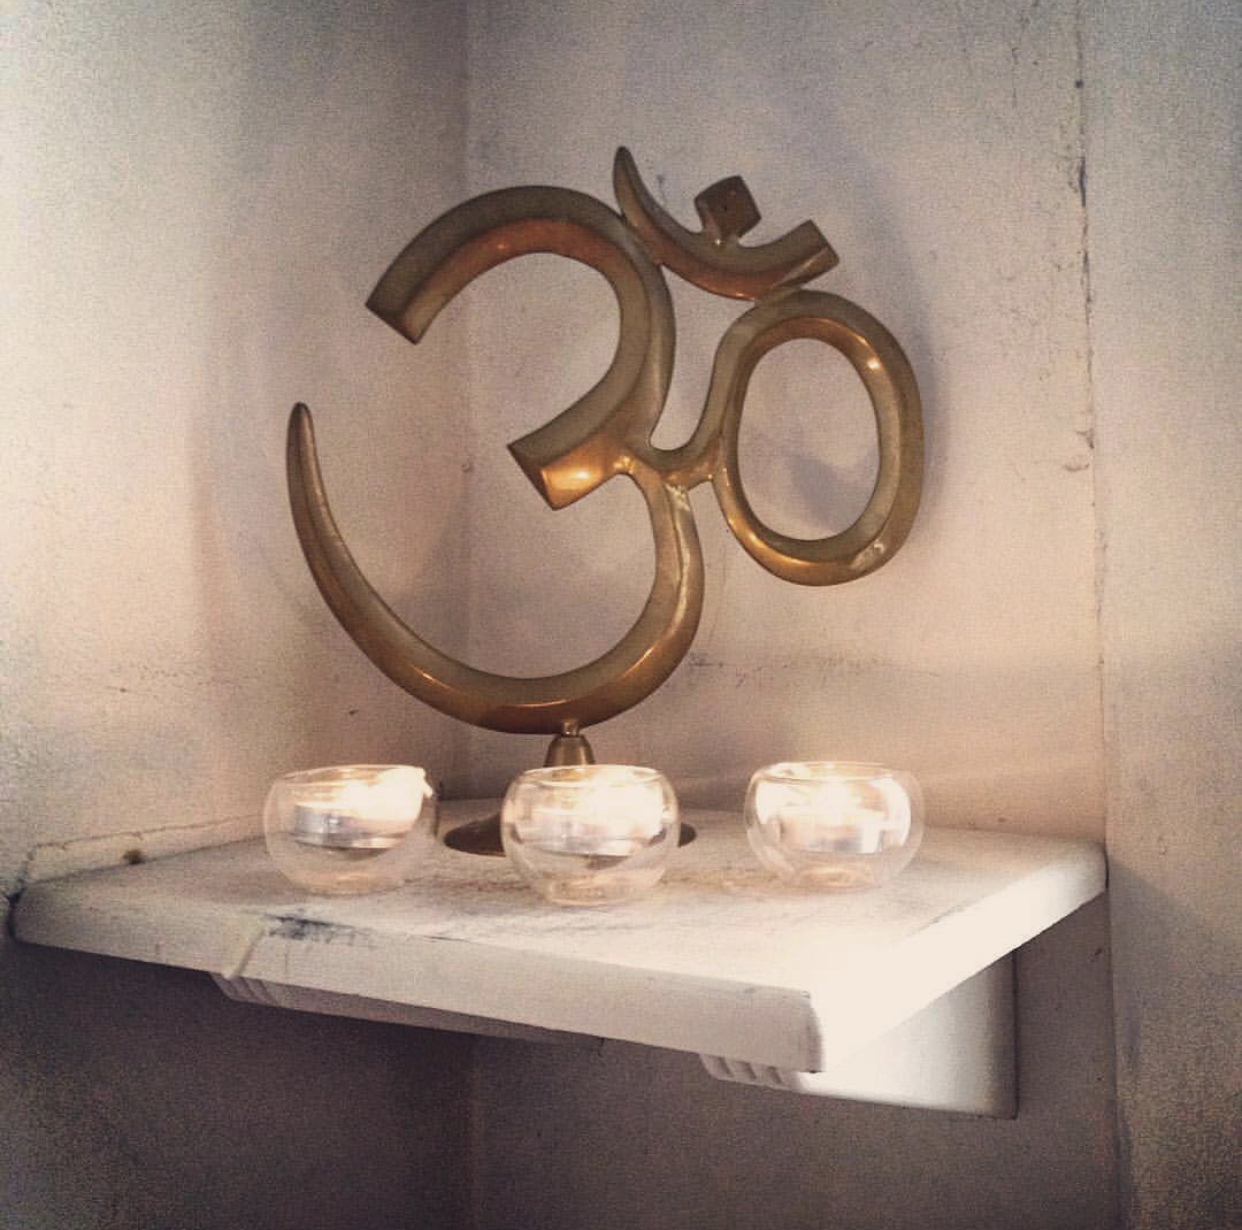 OM symbol statue on table surrounded by candles - Small Circle